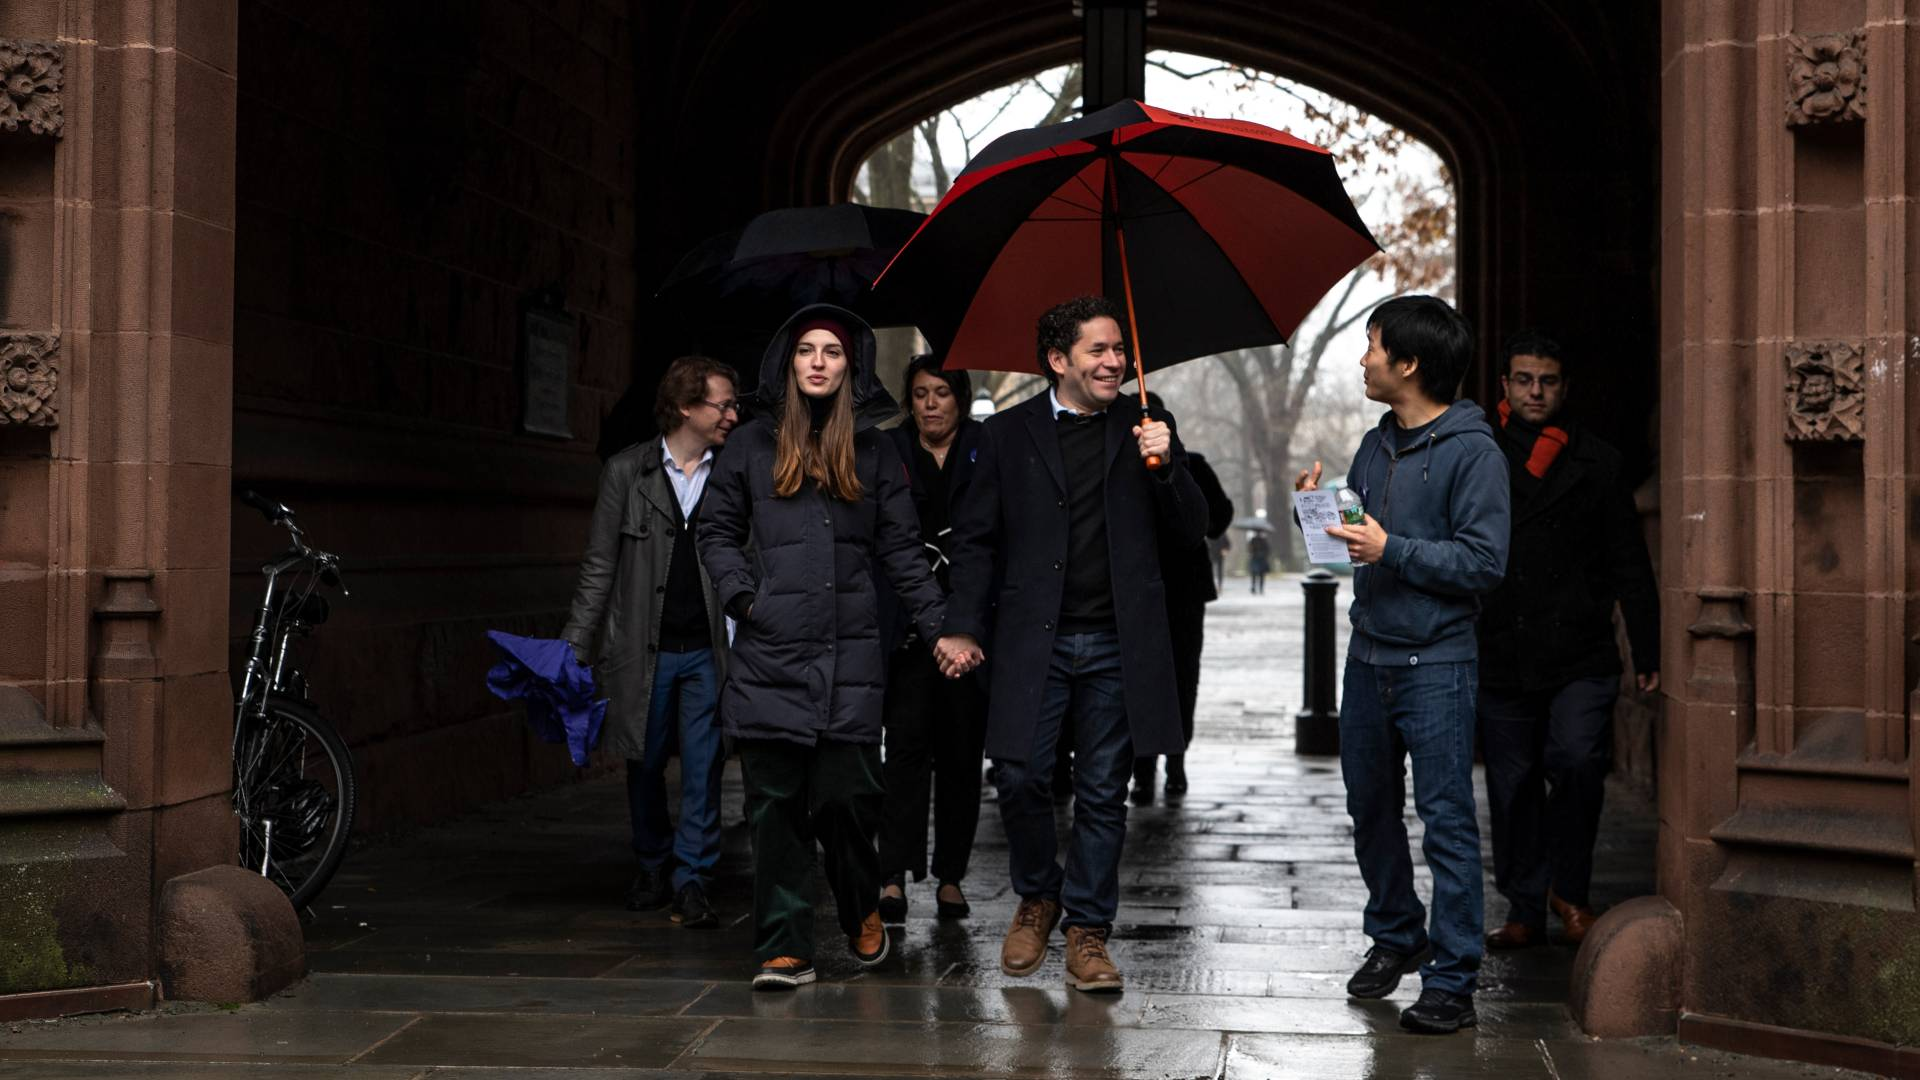 Gustavo Dudamel and people walking through Princeton archway